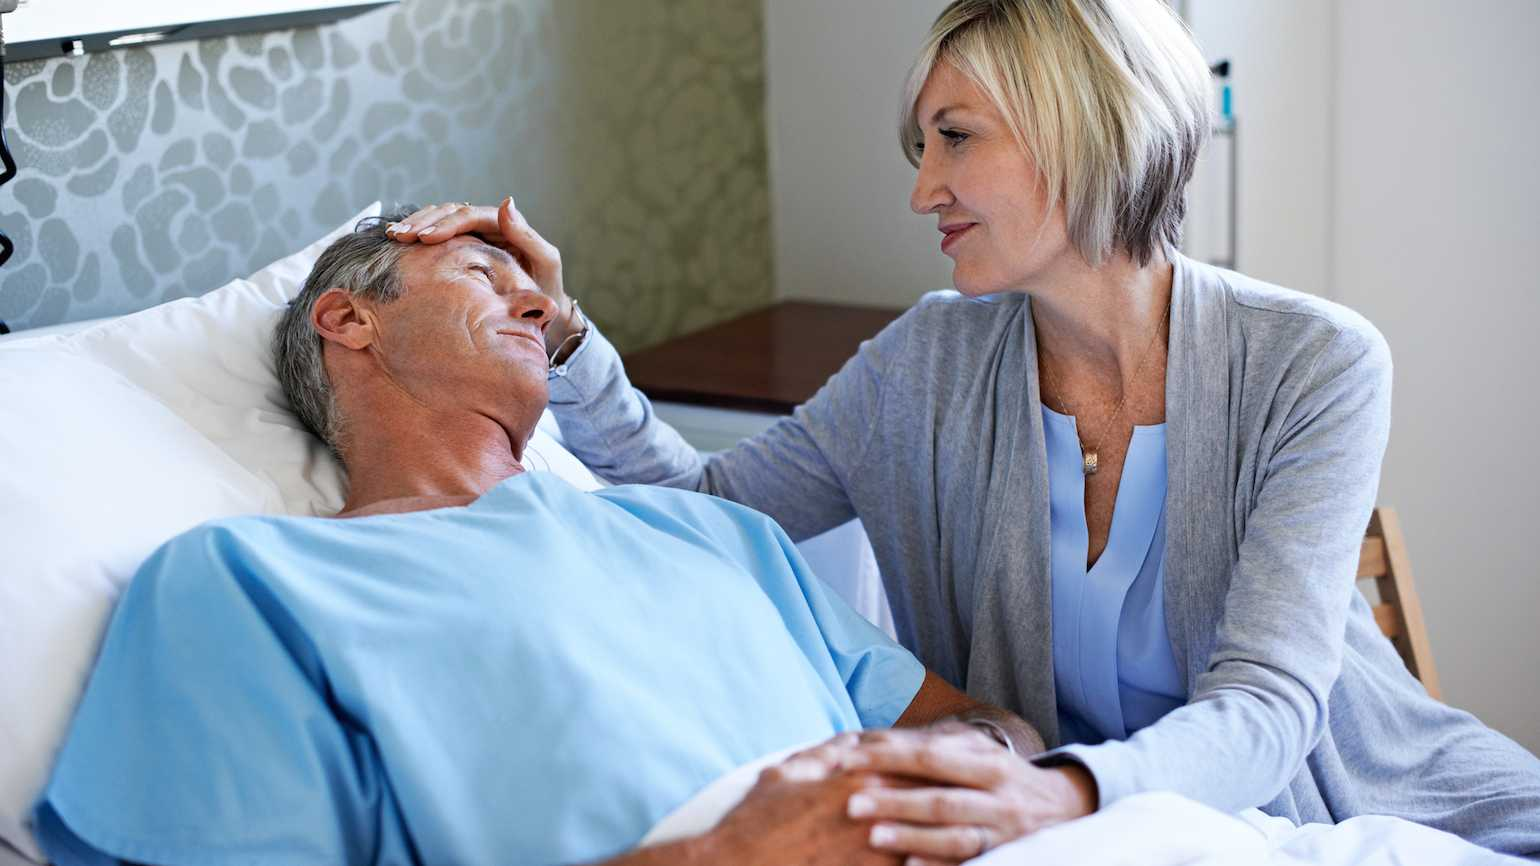 Comforting a loved one in the hospital